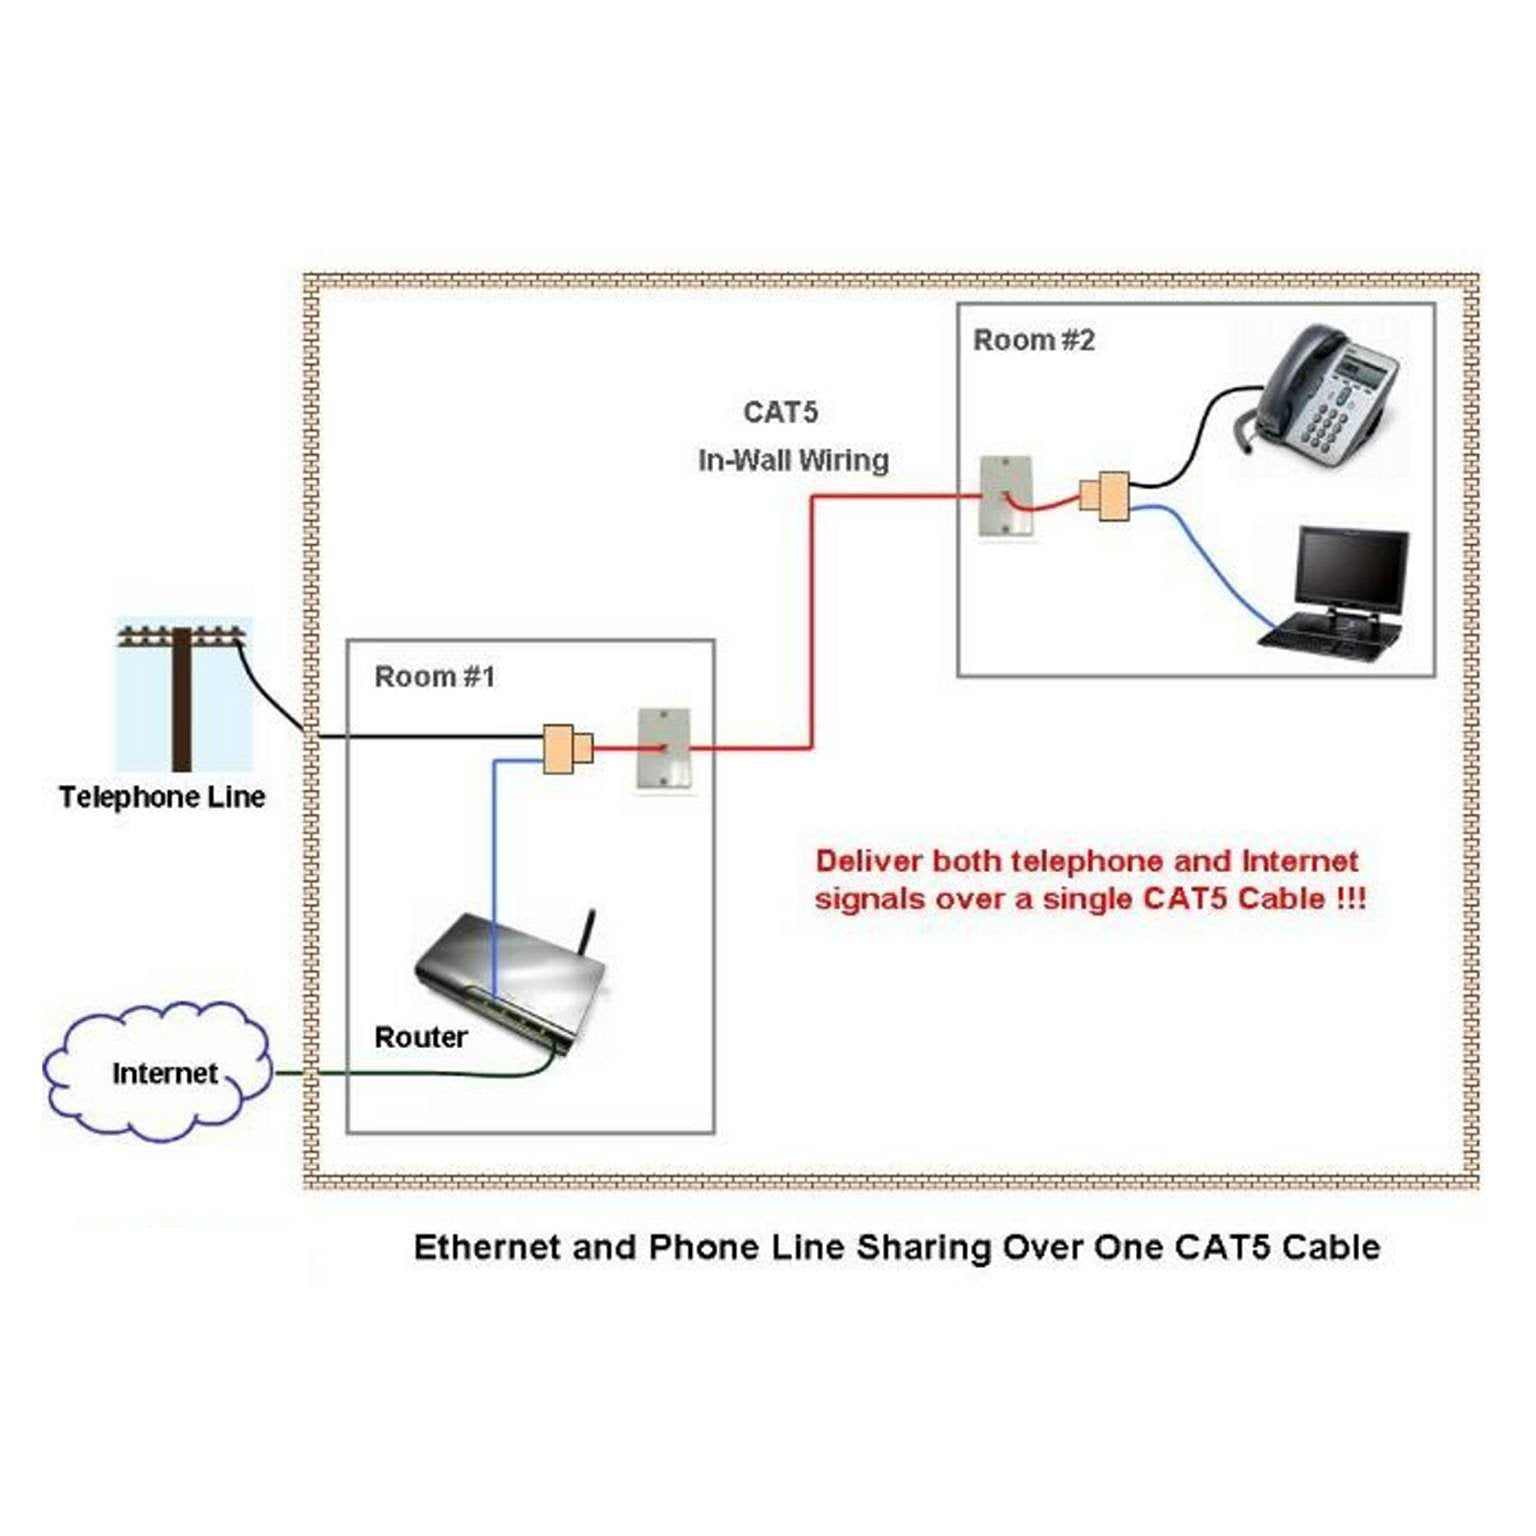 Ethernet Phone Wiring Diagram - Wiring Diagram Fascinating on cat5 cable pinout diagram, cat5 splitter diagram, cat5 with rj11 wiring, cat5 phone cable, rj45 wire order diagram, cat5 rs232 pin diagram, category 6 ethernet cable diagram, cat5 termination diagram, cross connect cable diagram, cat5 cabling diagram, cat 5 diagram, cat5 voip wiring, cat5 network wiring diagrams, outside phone box diagram, cat5 rj45 wiring-diagram, cat6 color diagram,